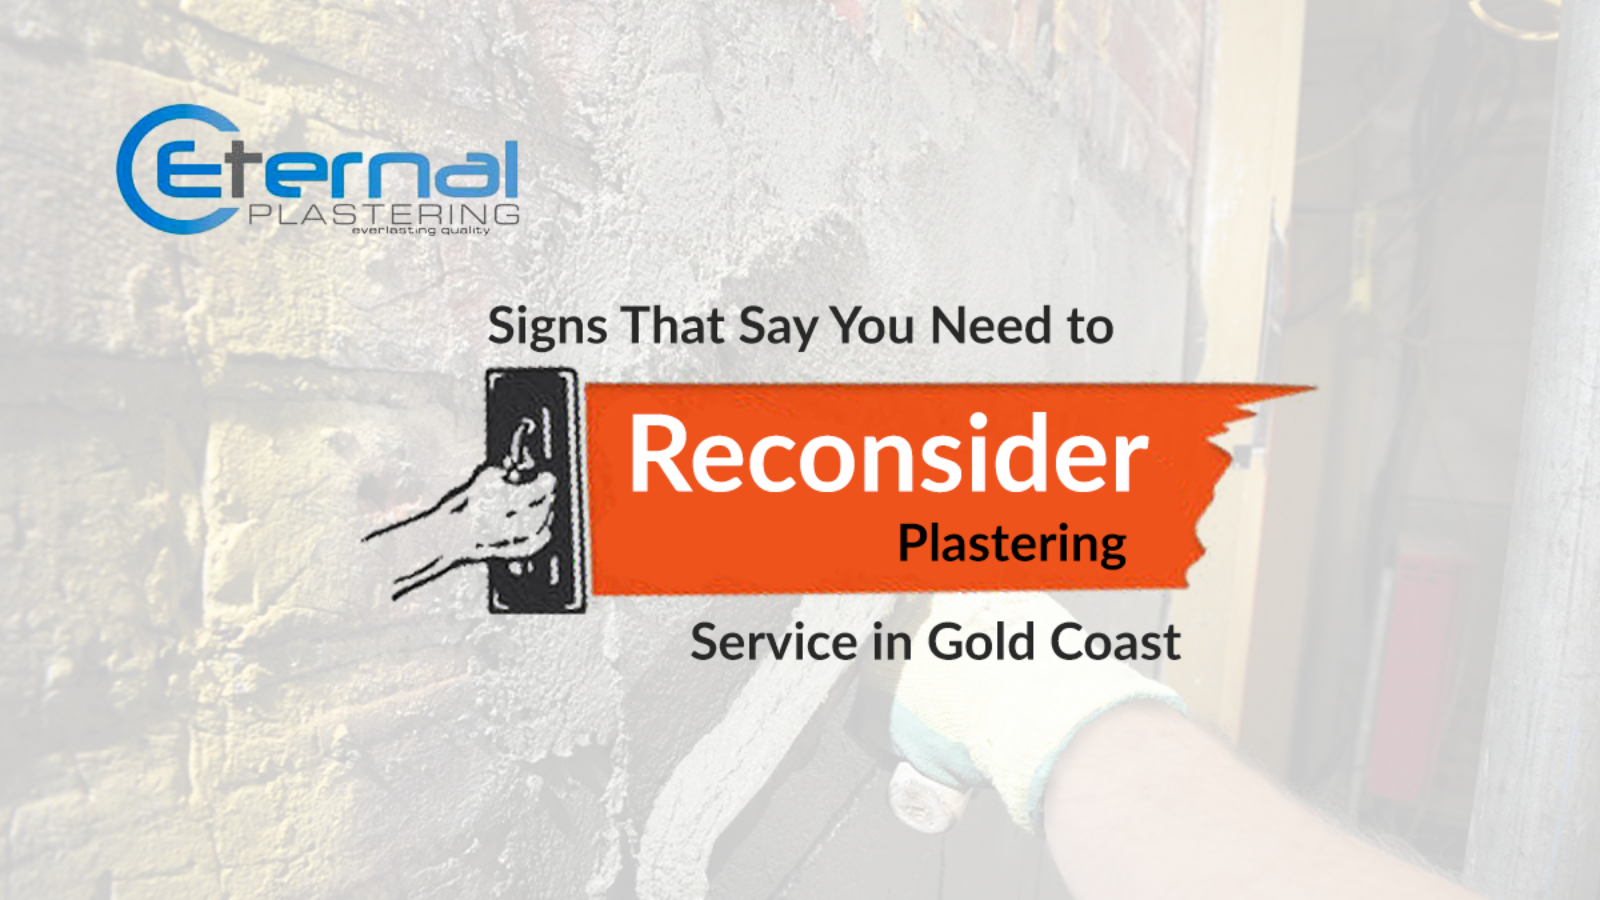 Reconsider-Plastering-Service-in-Gold-Coast